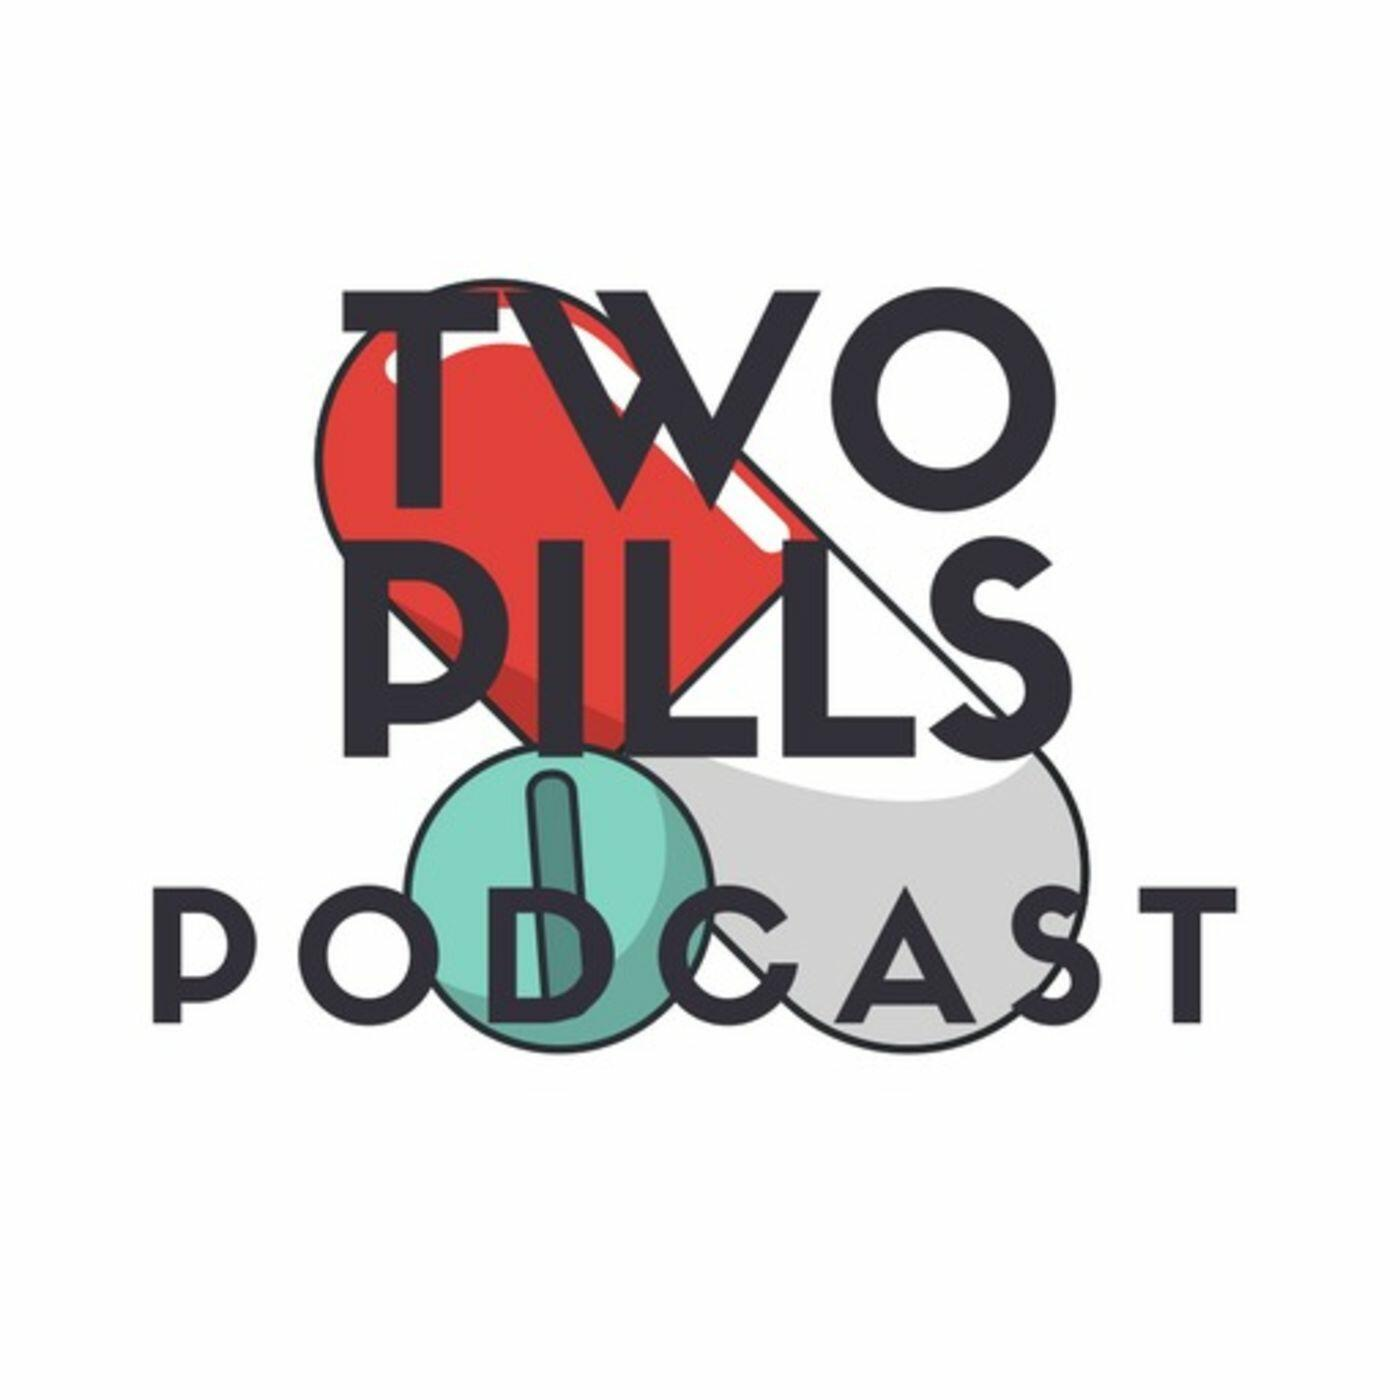 Take Two Pills and listen to this podcast